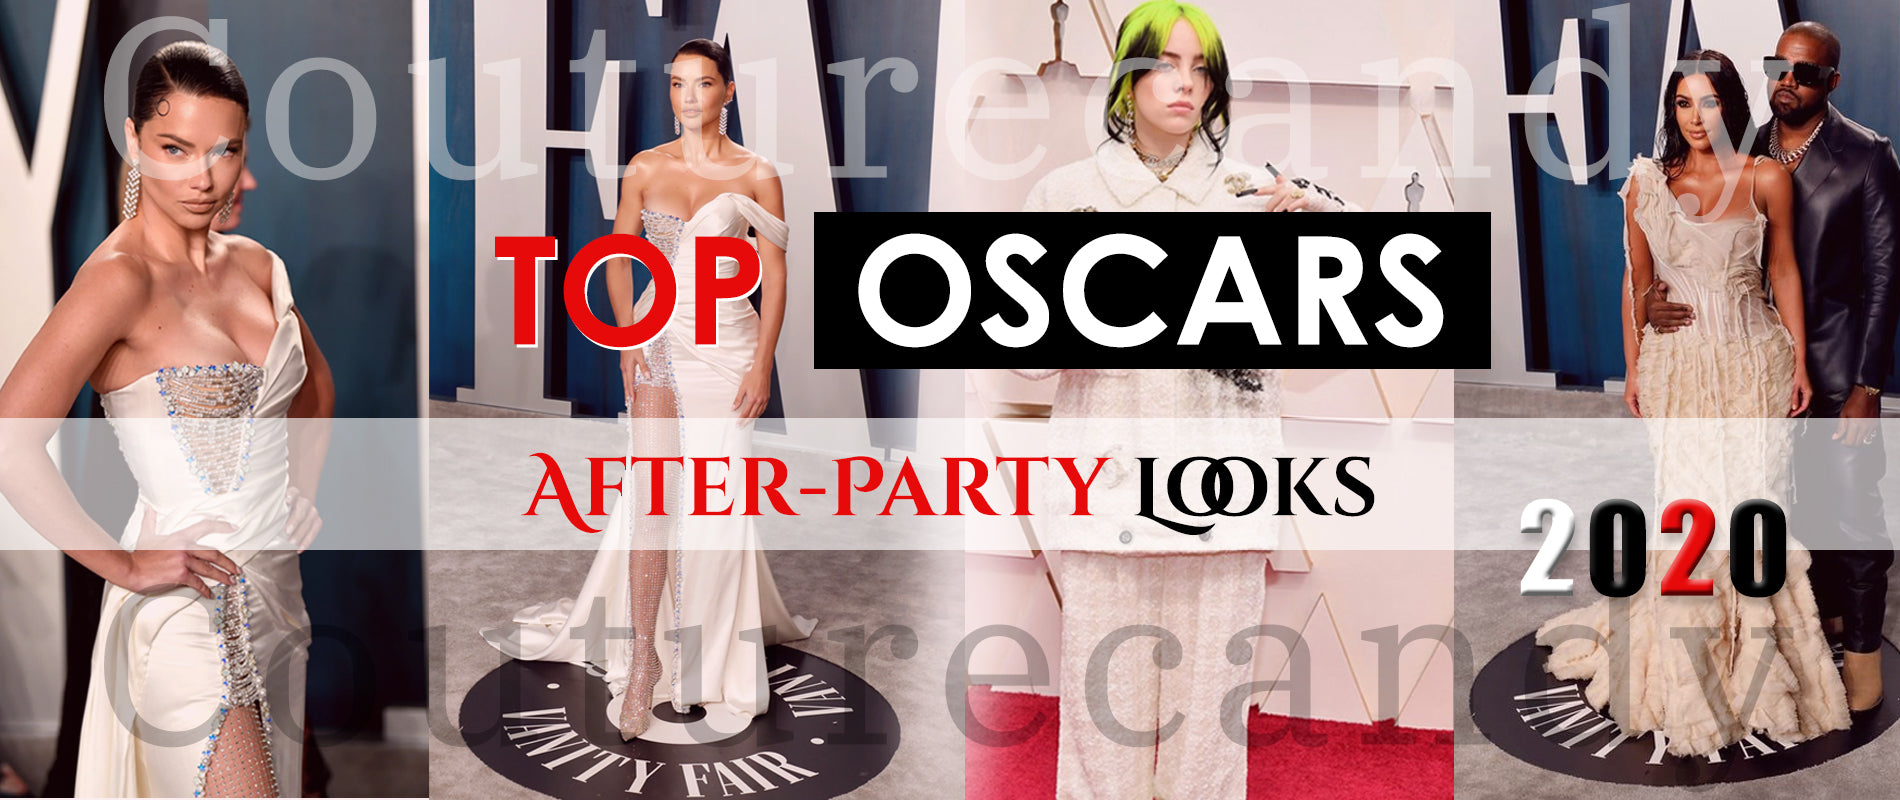 Top 7 2020 Oscars After-Party Looks That You Cannot Unsee